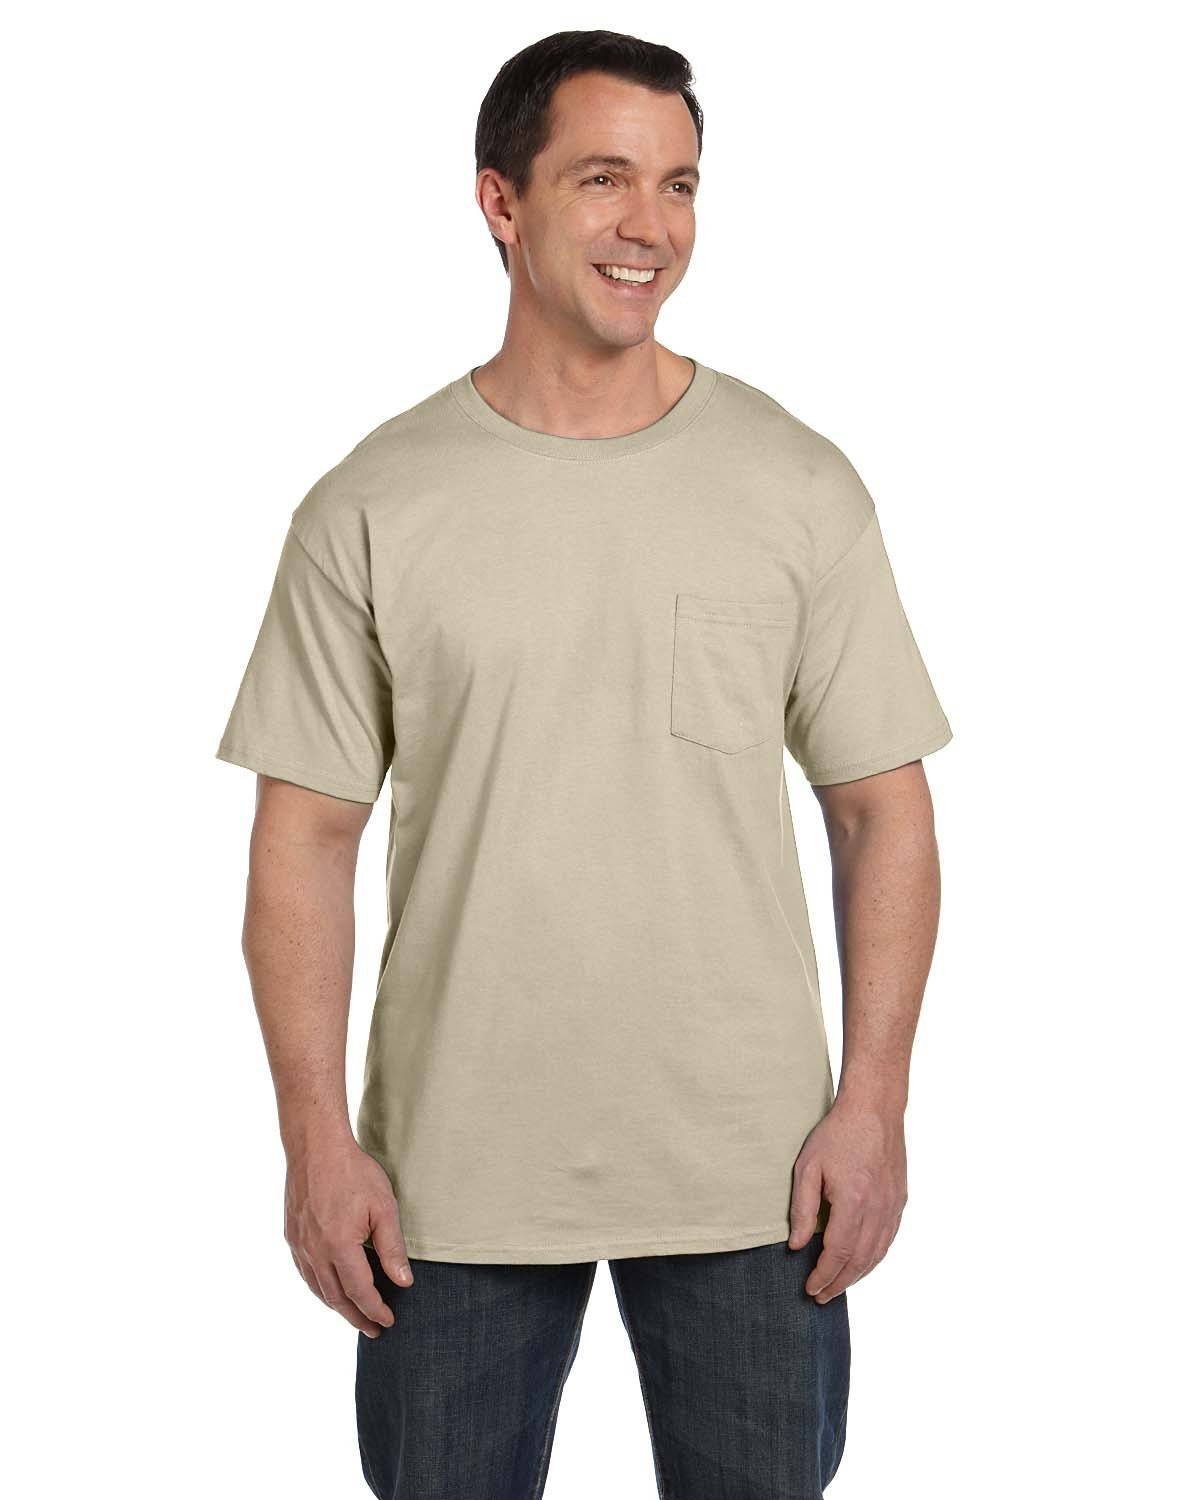 Hanes Adult Beefy-T® with Pocket SAND